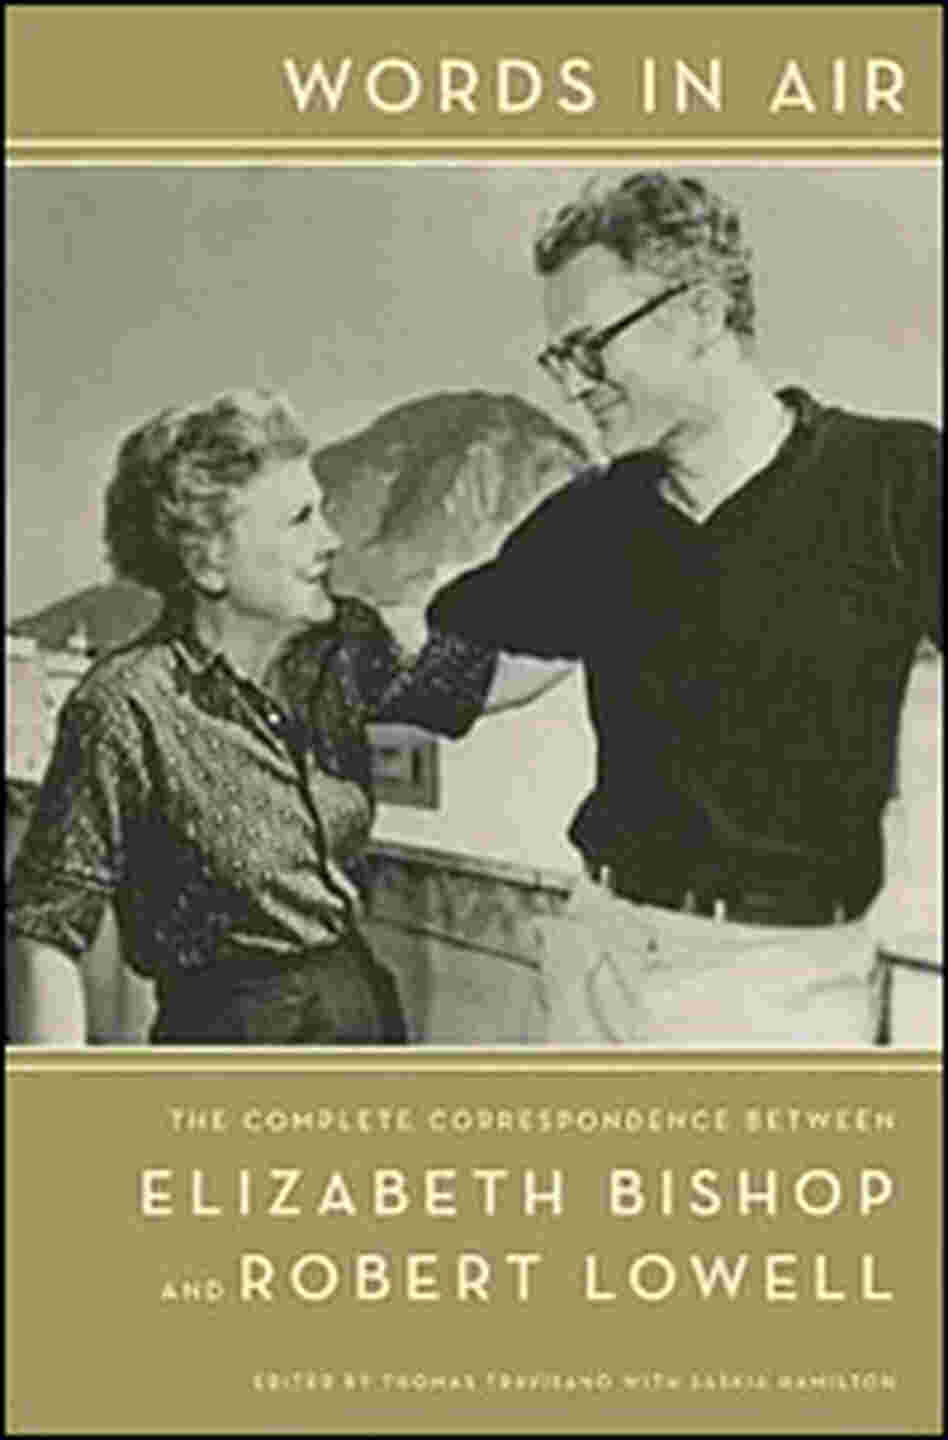 Words in Air: The Complete Correspondence Between Elizabeth Bishop and Robert Lowell Elizabeth Bishop, Robert Lowell, Thomas Travisano and Saskia Hamilton